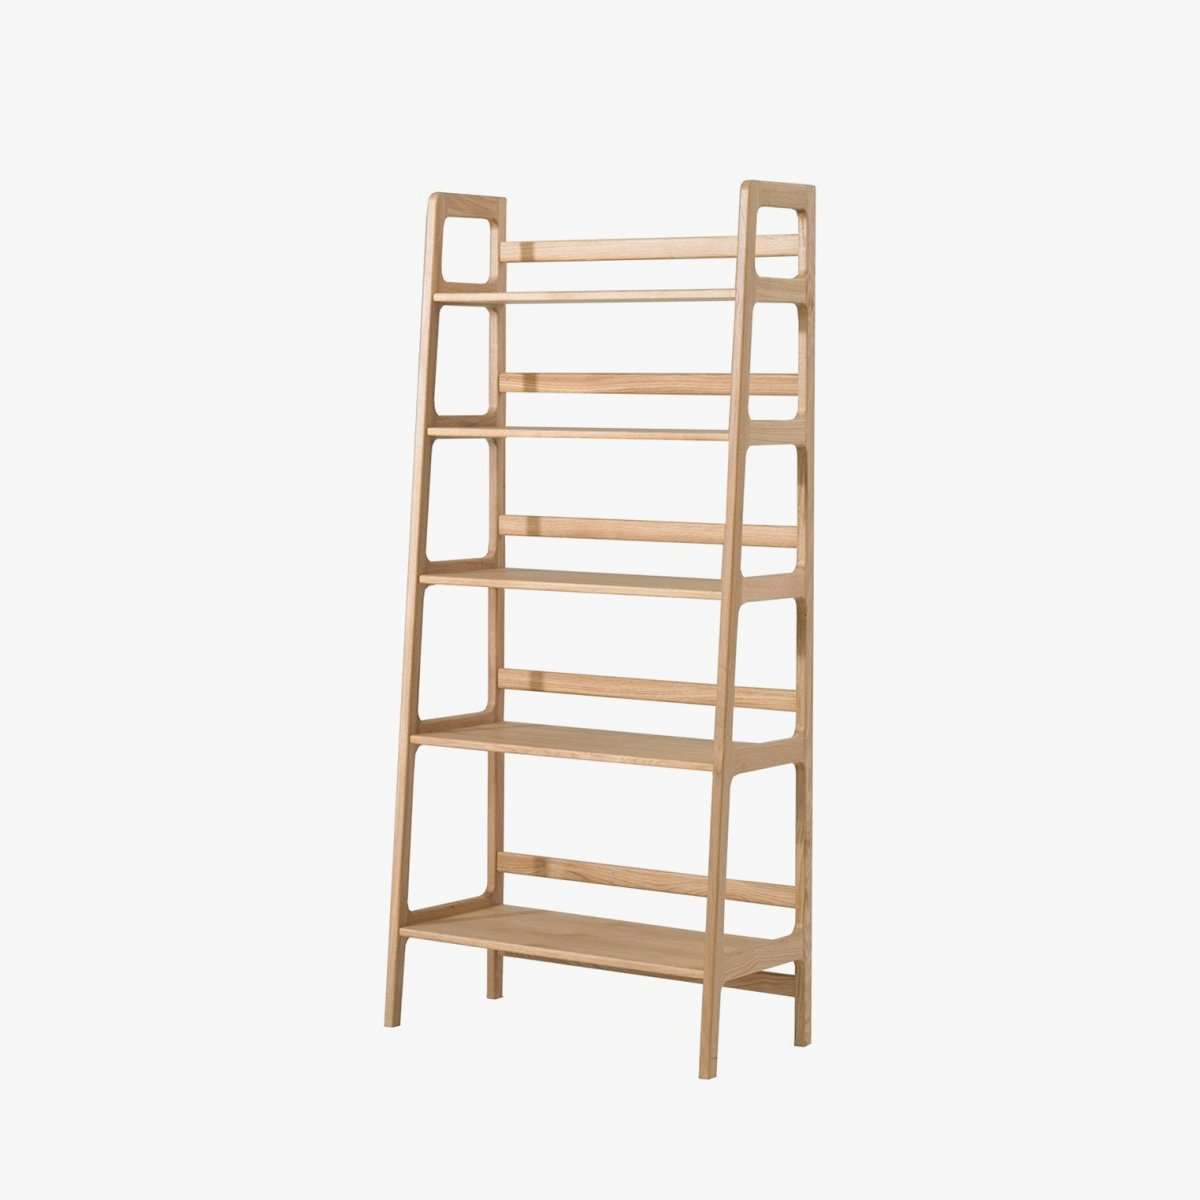 Agnes High Shelving Unit, oak.